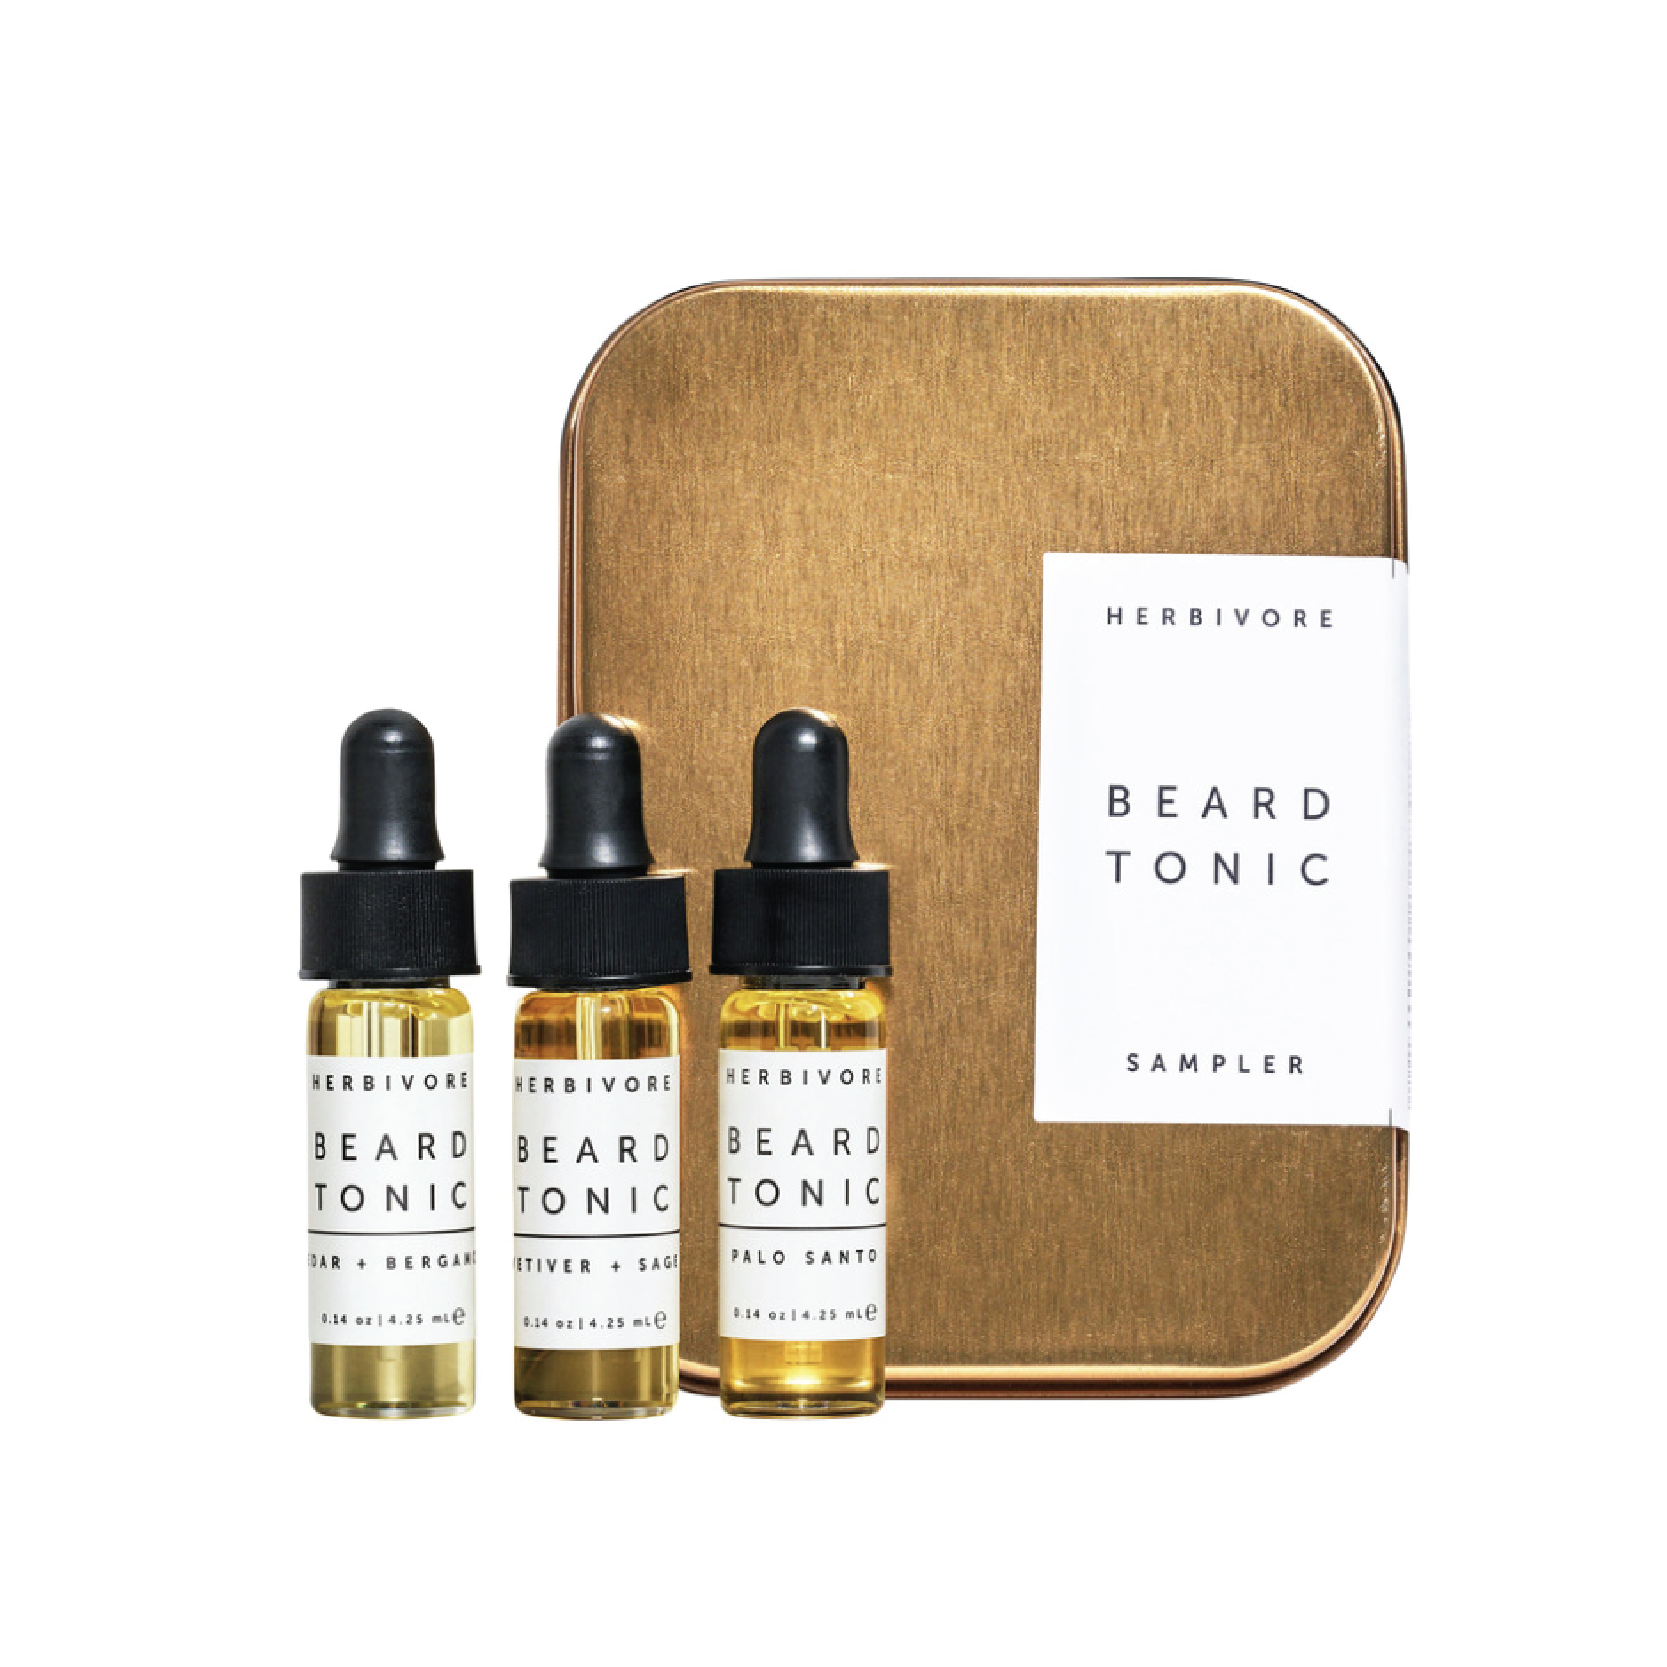 Herbivore Botanicals Beard Tonic Sampler - $22 at GoopThis is the cutest minimal packaging and comes with three plant-based oils to help nourish and condition facial hair.